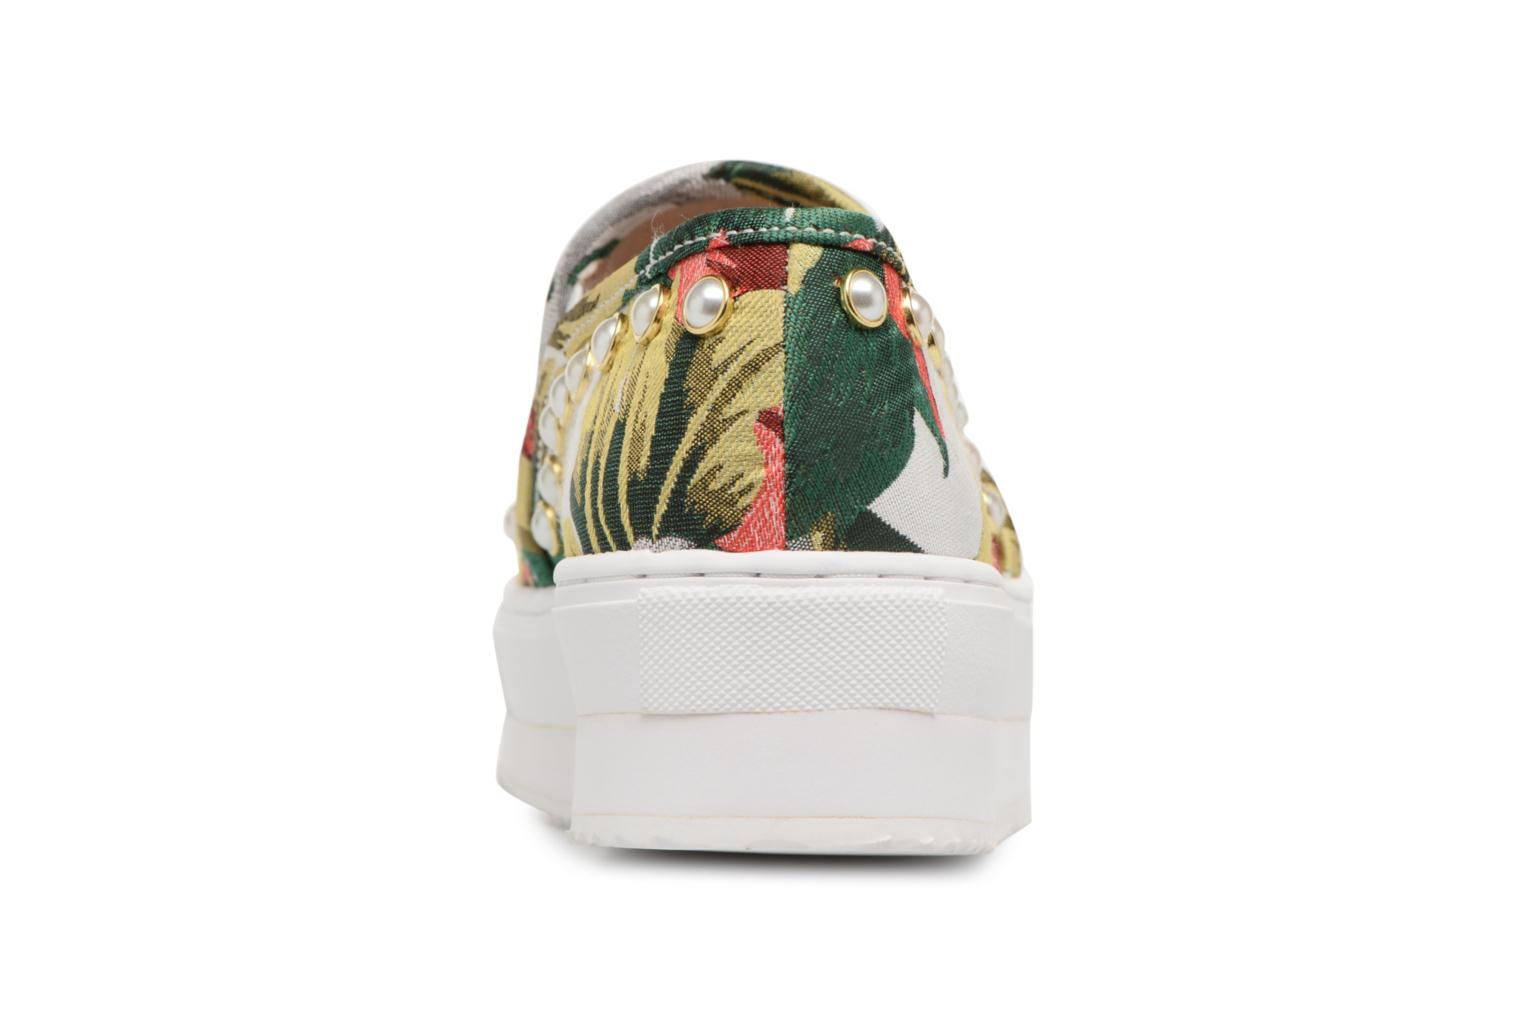 Loafer Madden Bright Slick P Multi Steve HnBxU1Uw